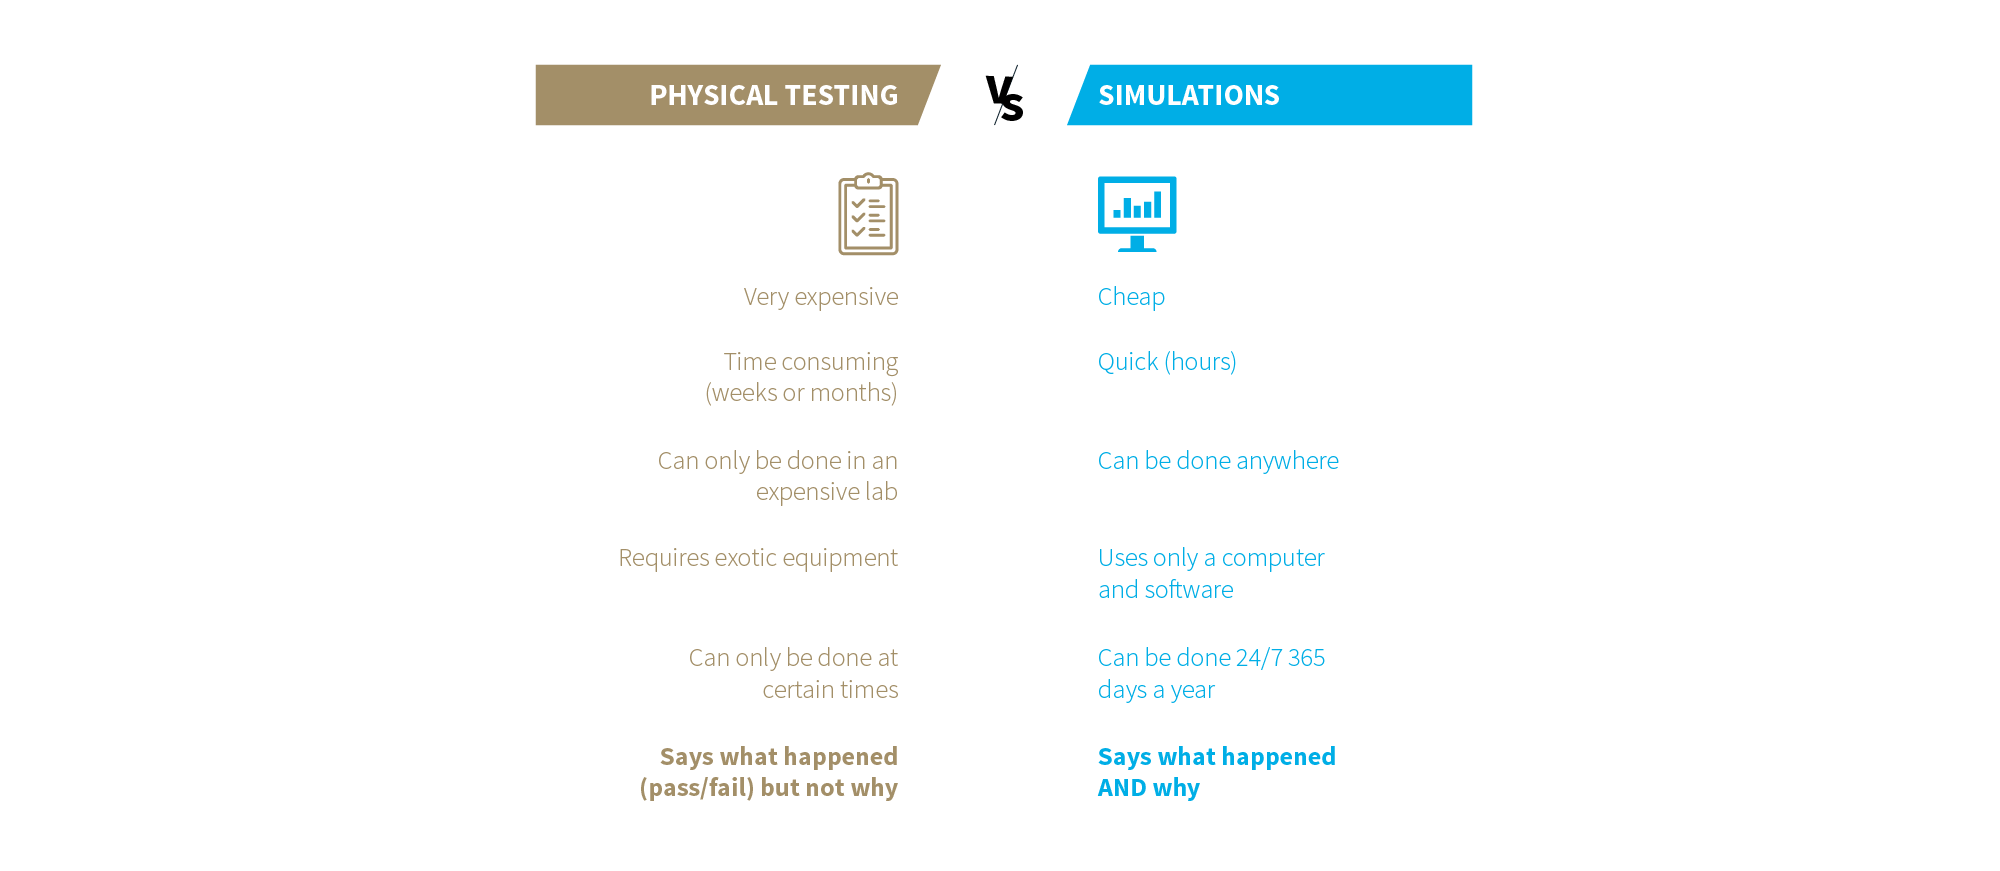 Physical testing vs simulations